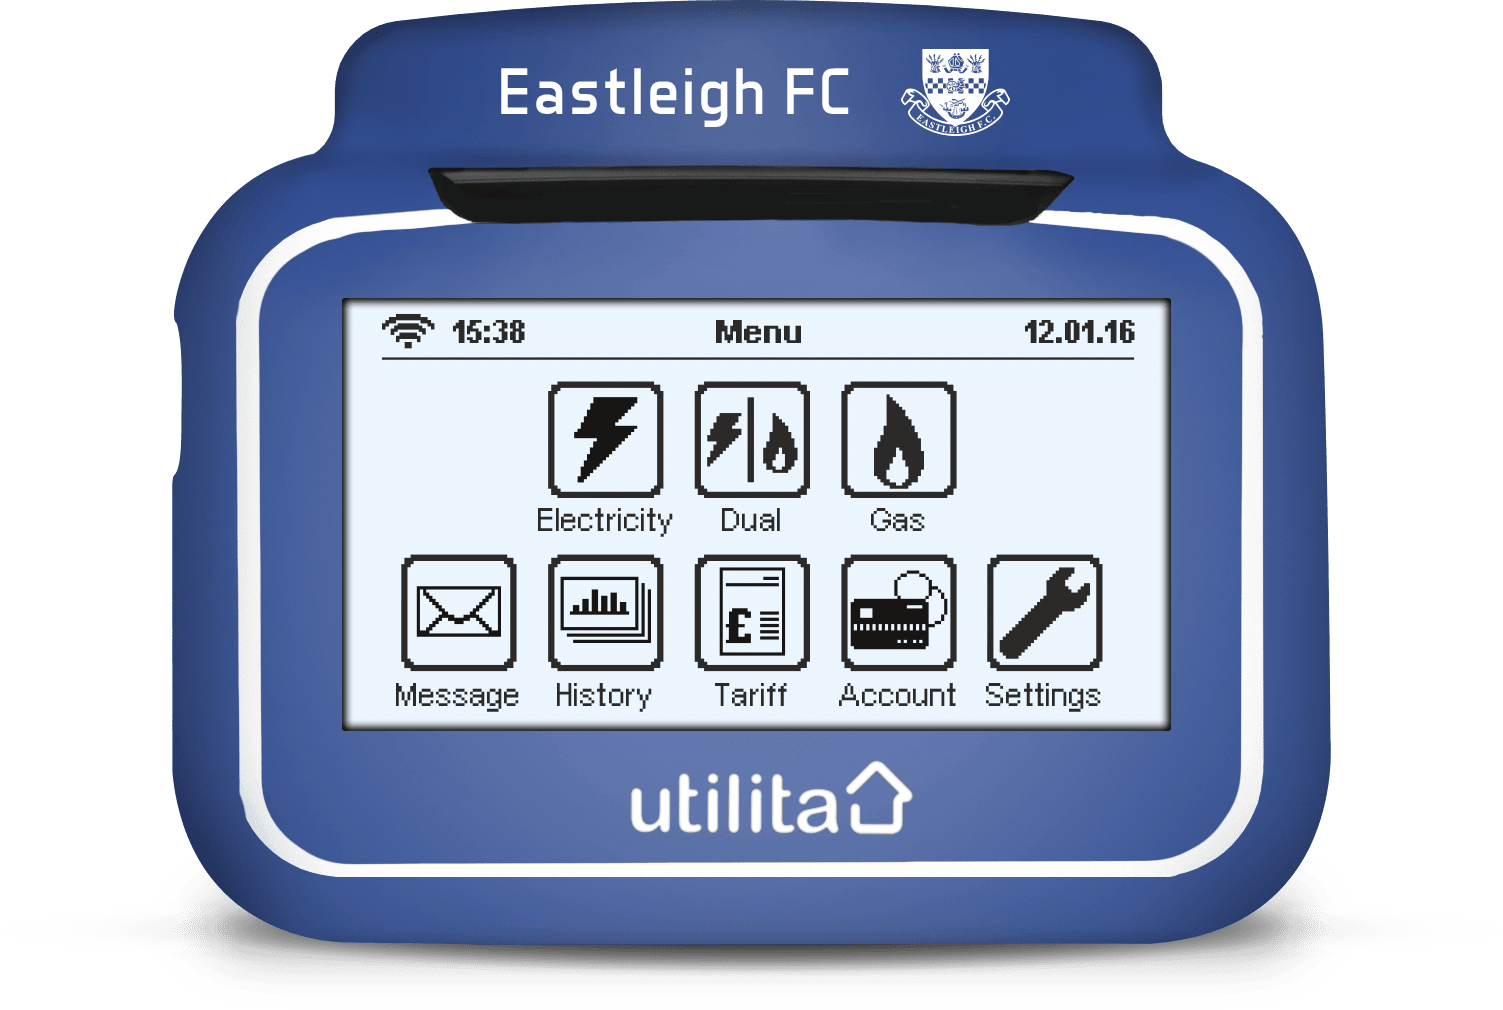 eastleigh In-Home Display Cover